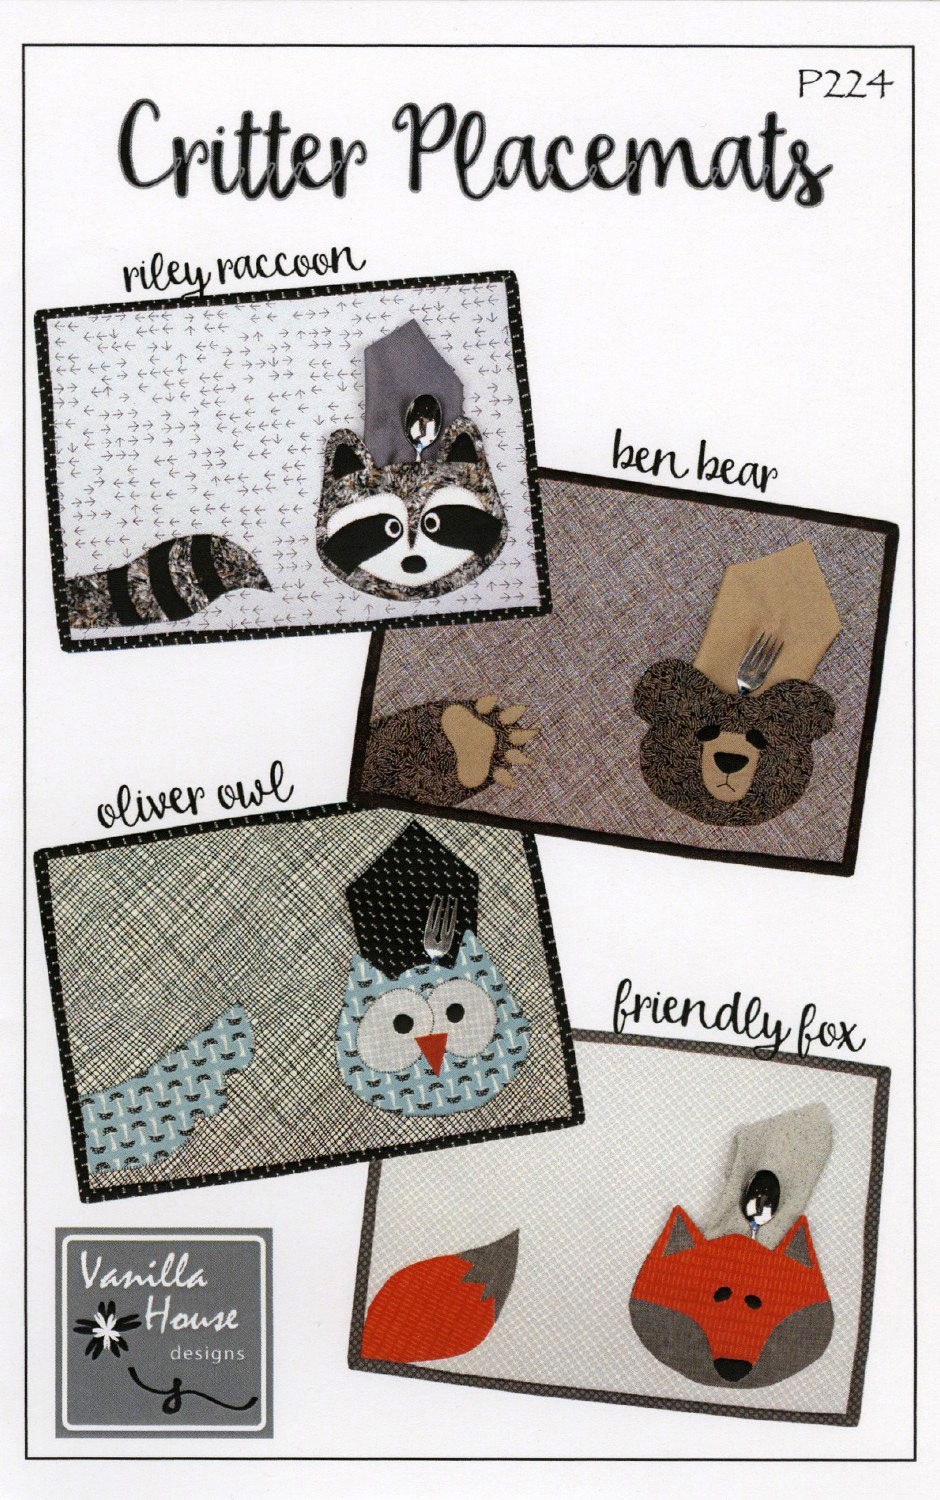 Critter-Placemats-sewing-pattern-Vanilla-House-Designs-front